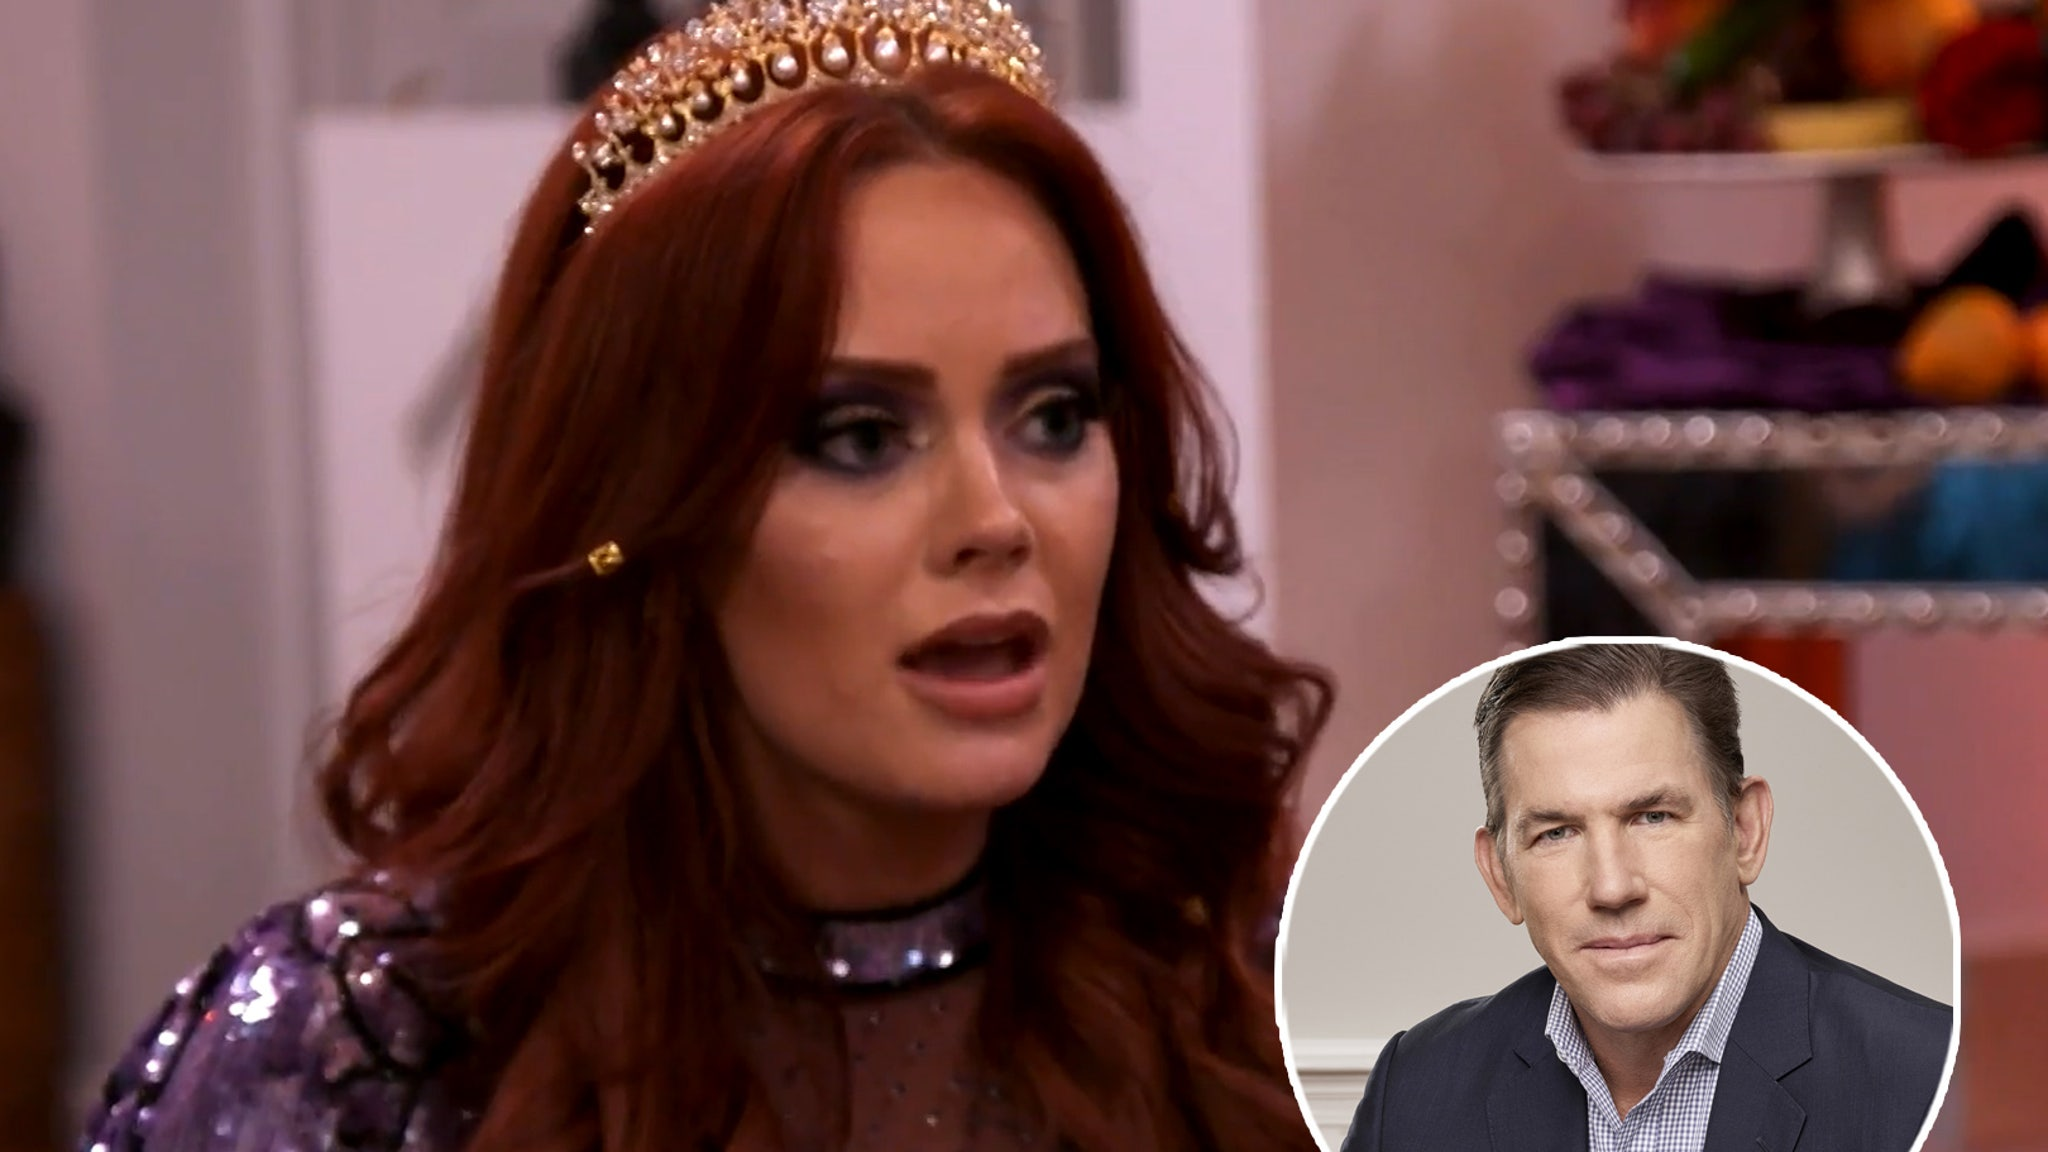 How Southern Charm's Kathryn Dennis Reacted to Ex Thomas Ravenel Getting Another Woman Pregnant